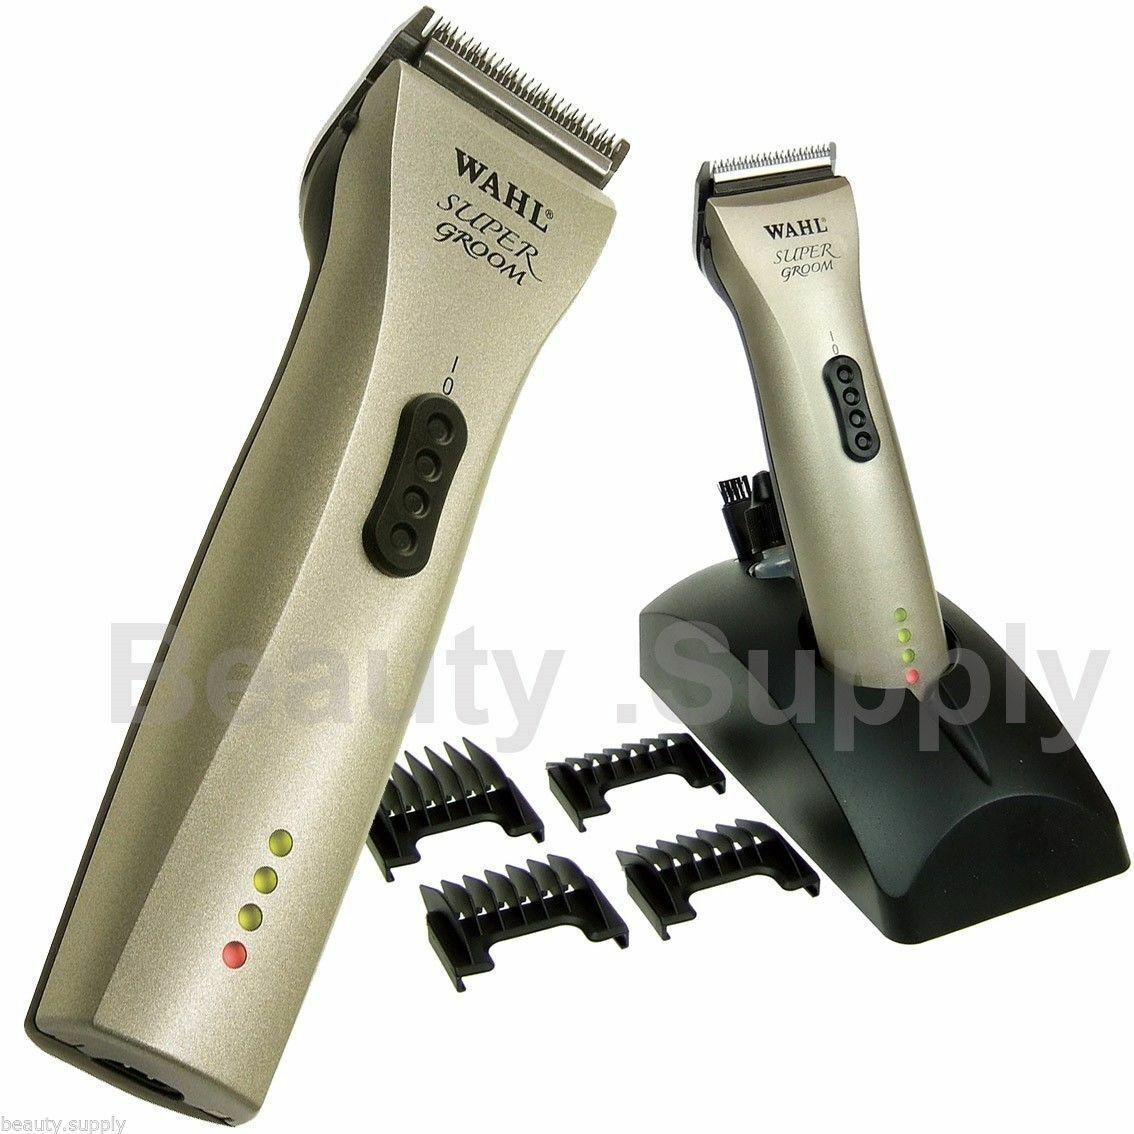 Wahl Super Groom Animal Hair Grooming Clipper 1872-0275 Pet Dog Horse